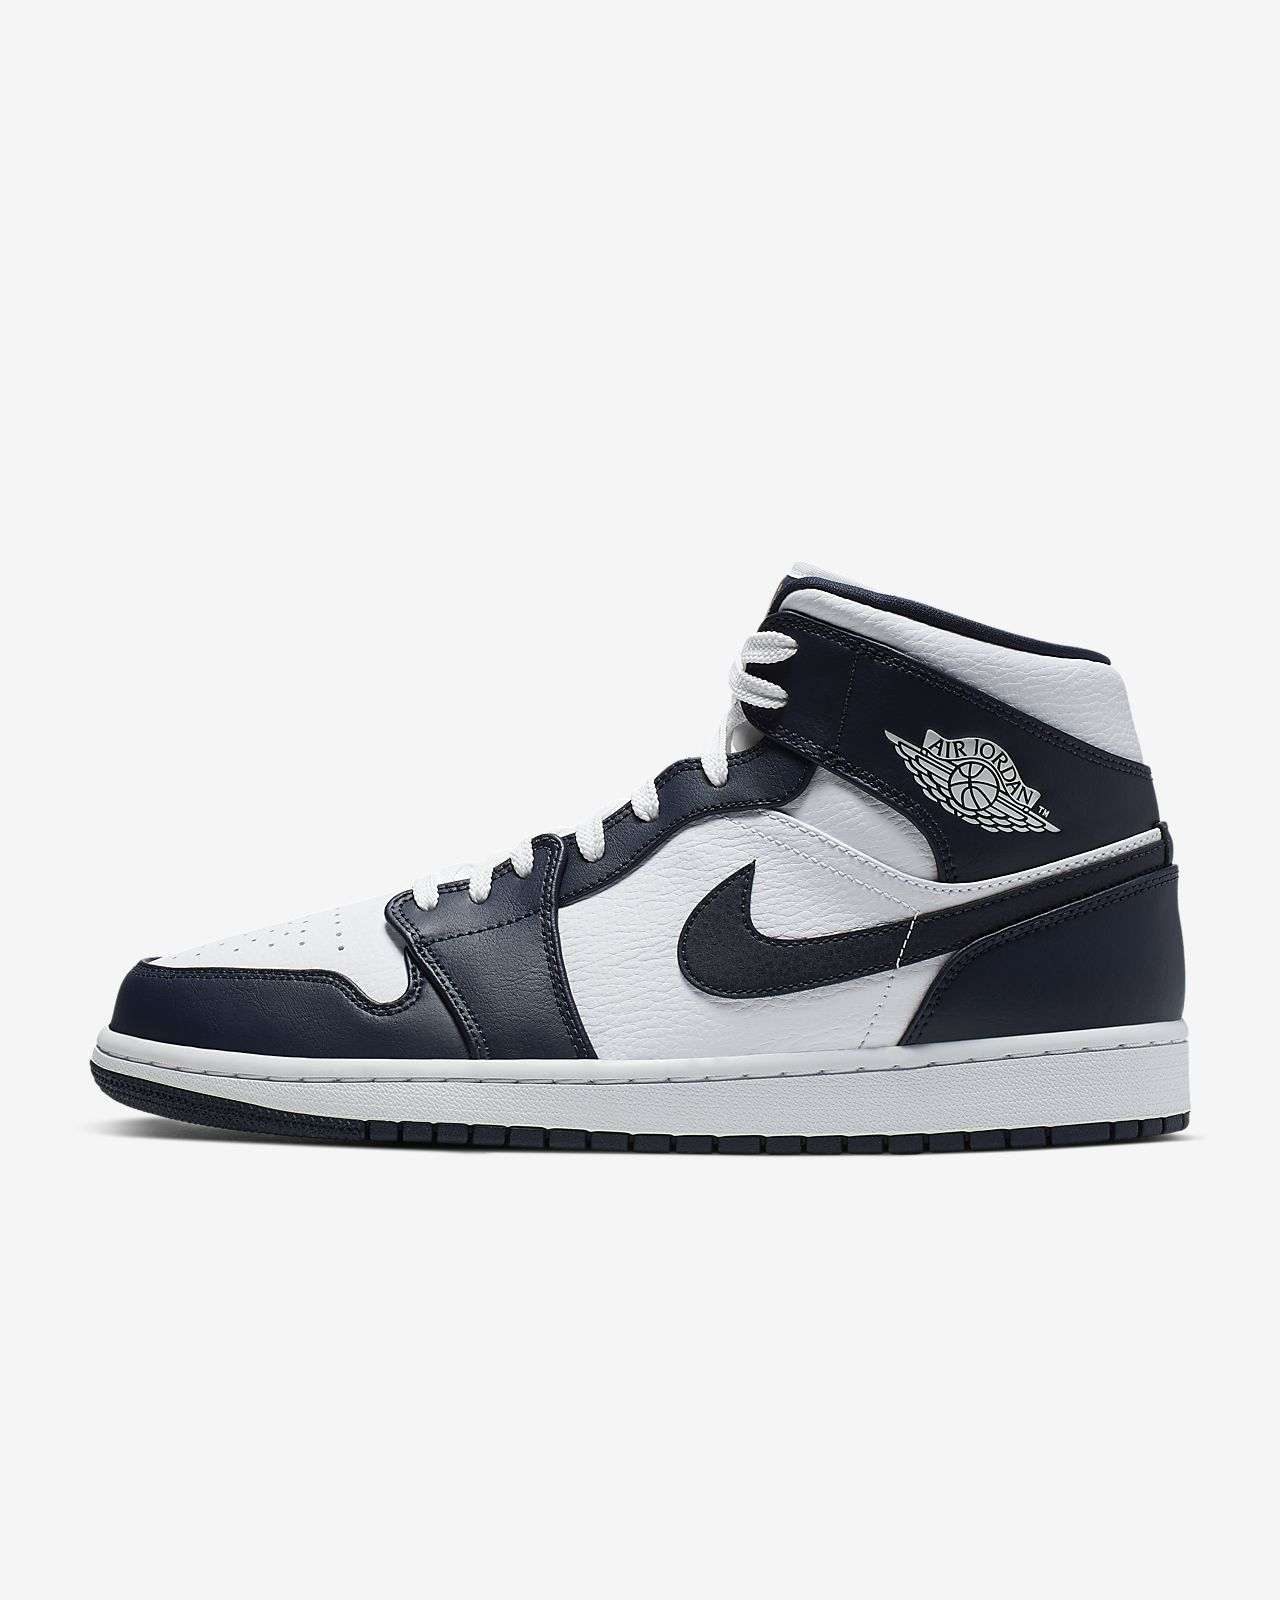 sale usa online coupon code various colors Air Jordan 1 Mid Shoe